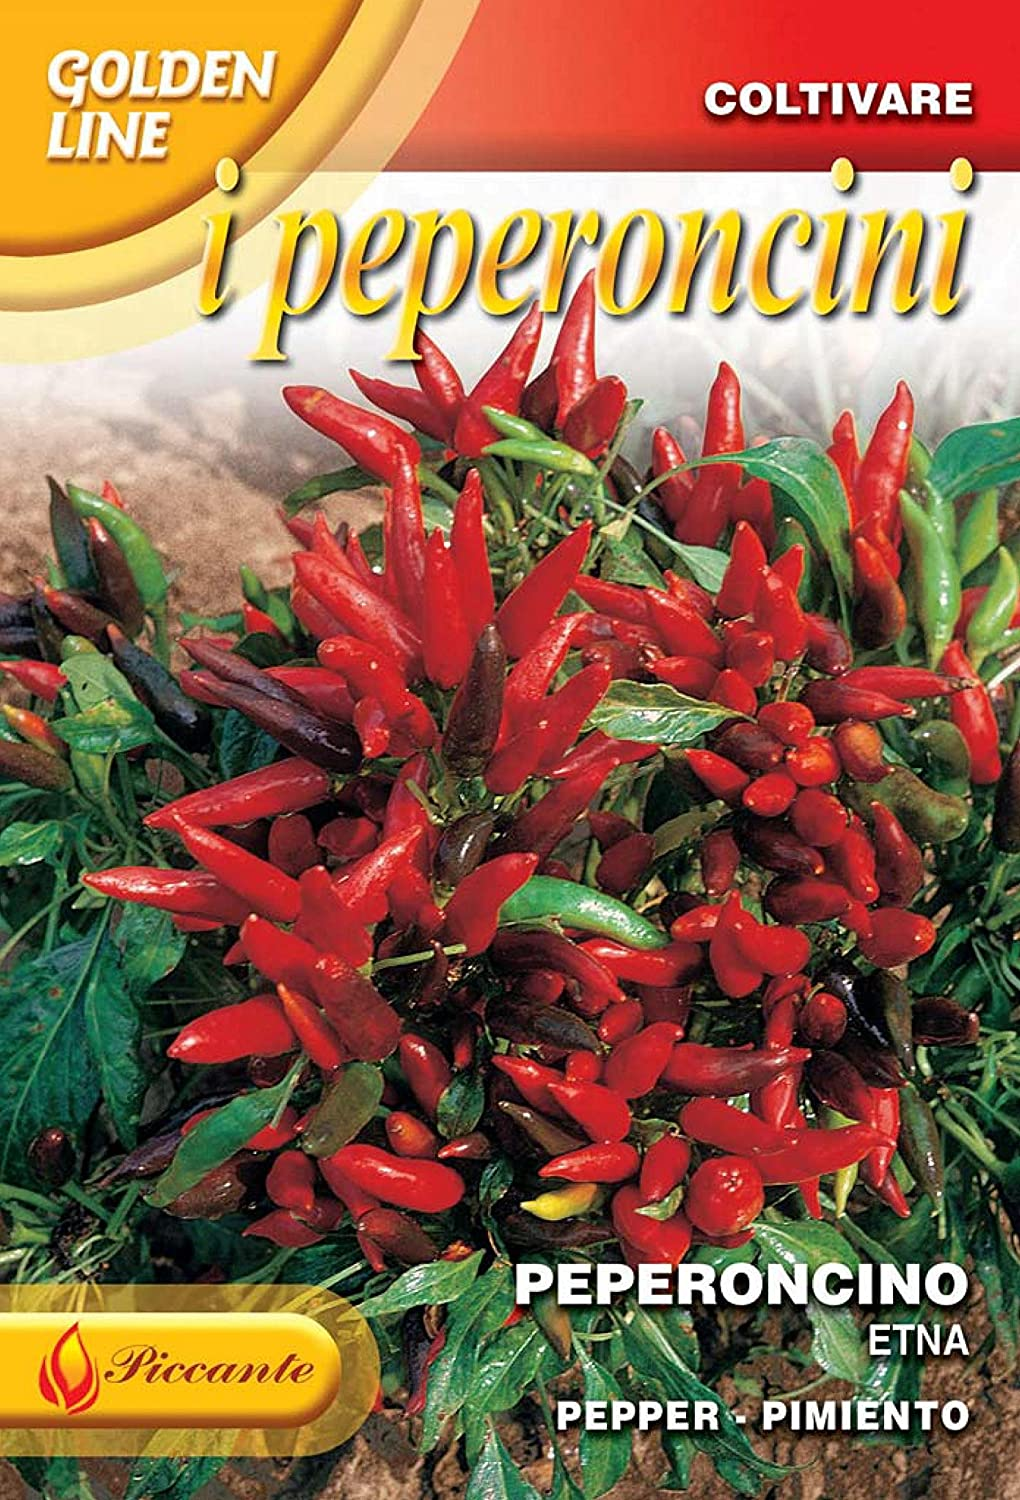 Franchi Seeds of ItalyChilli Pepper Etna Seeds